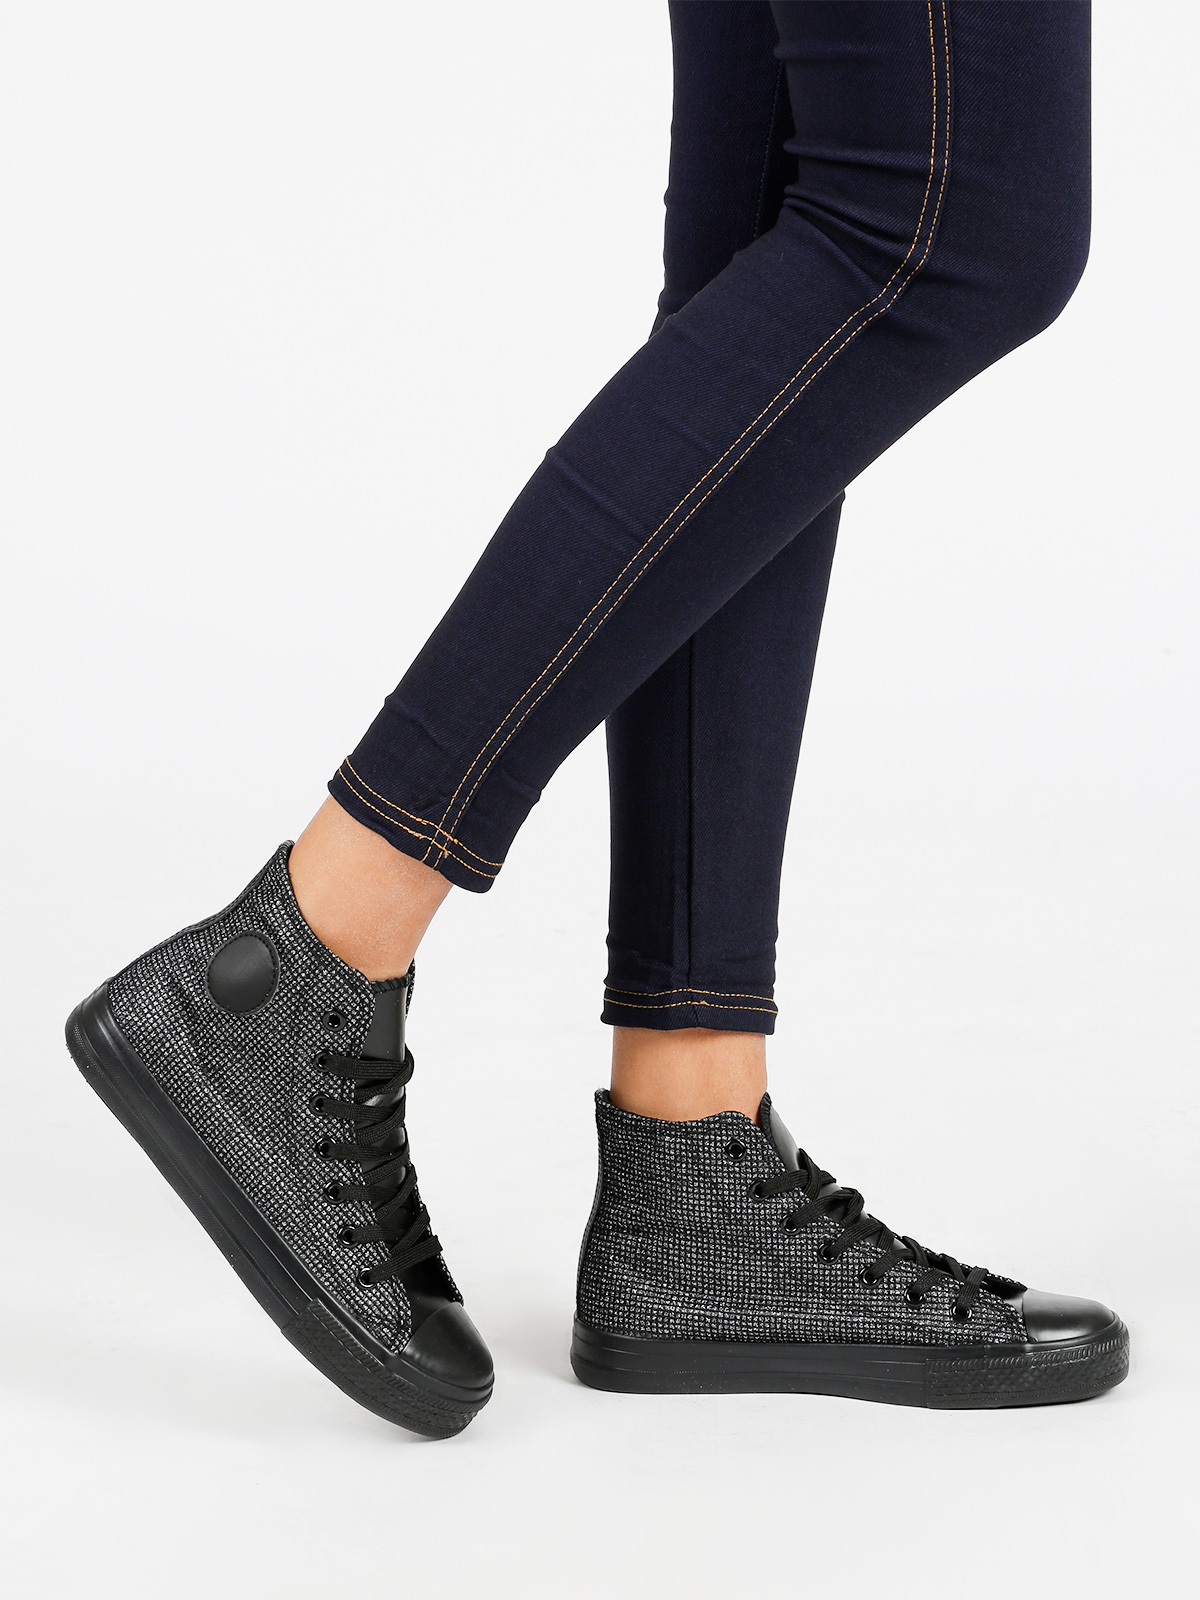 Black Ankle-high Sneaker Woman Casual Mathcing